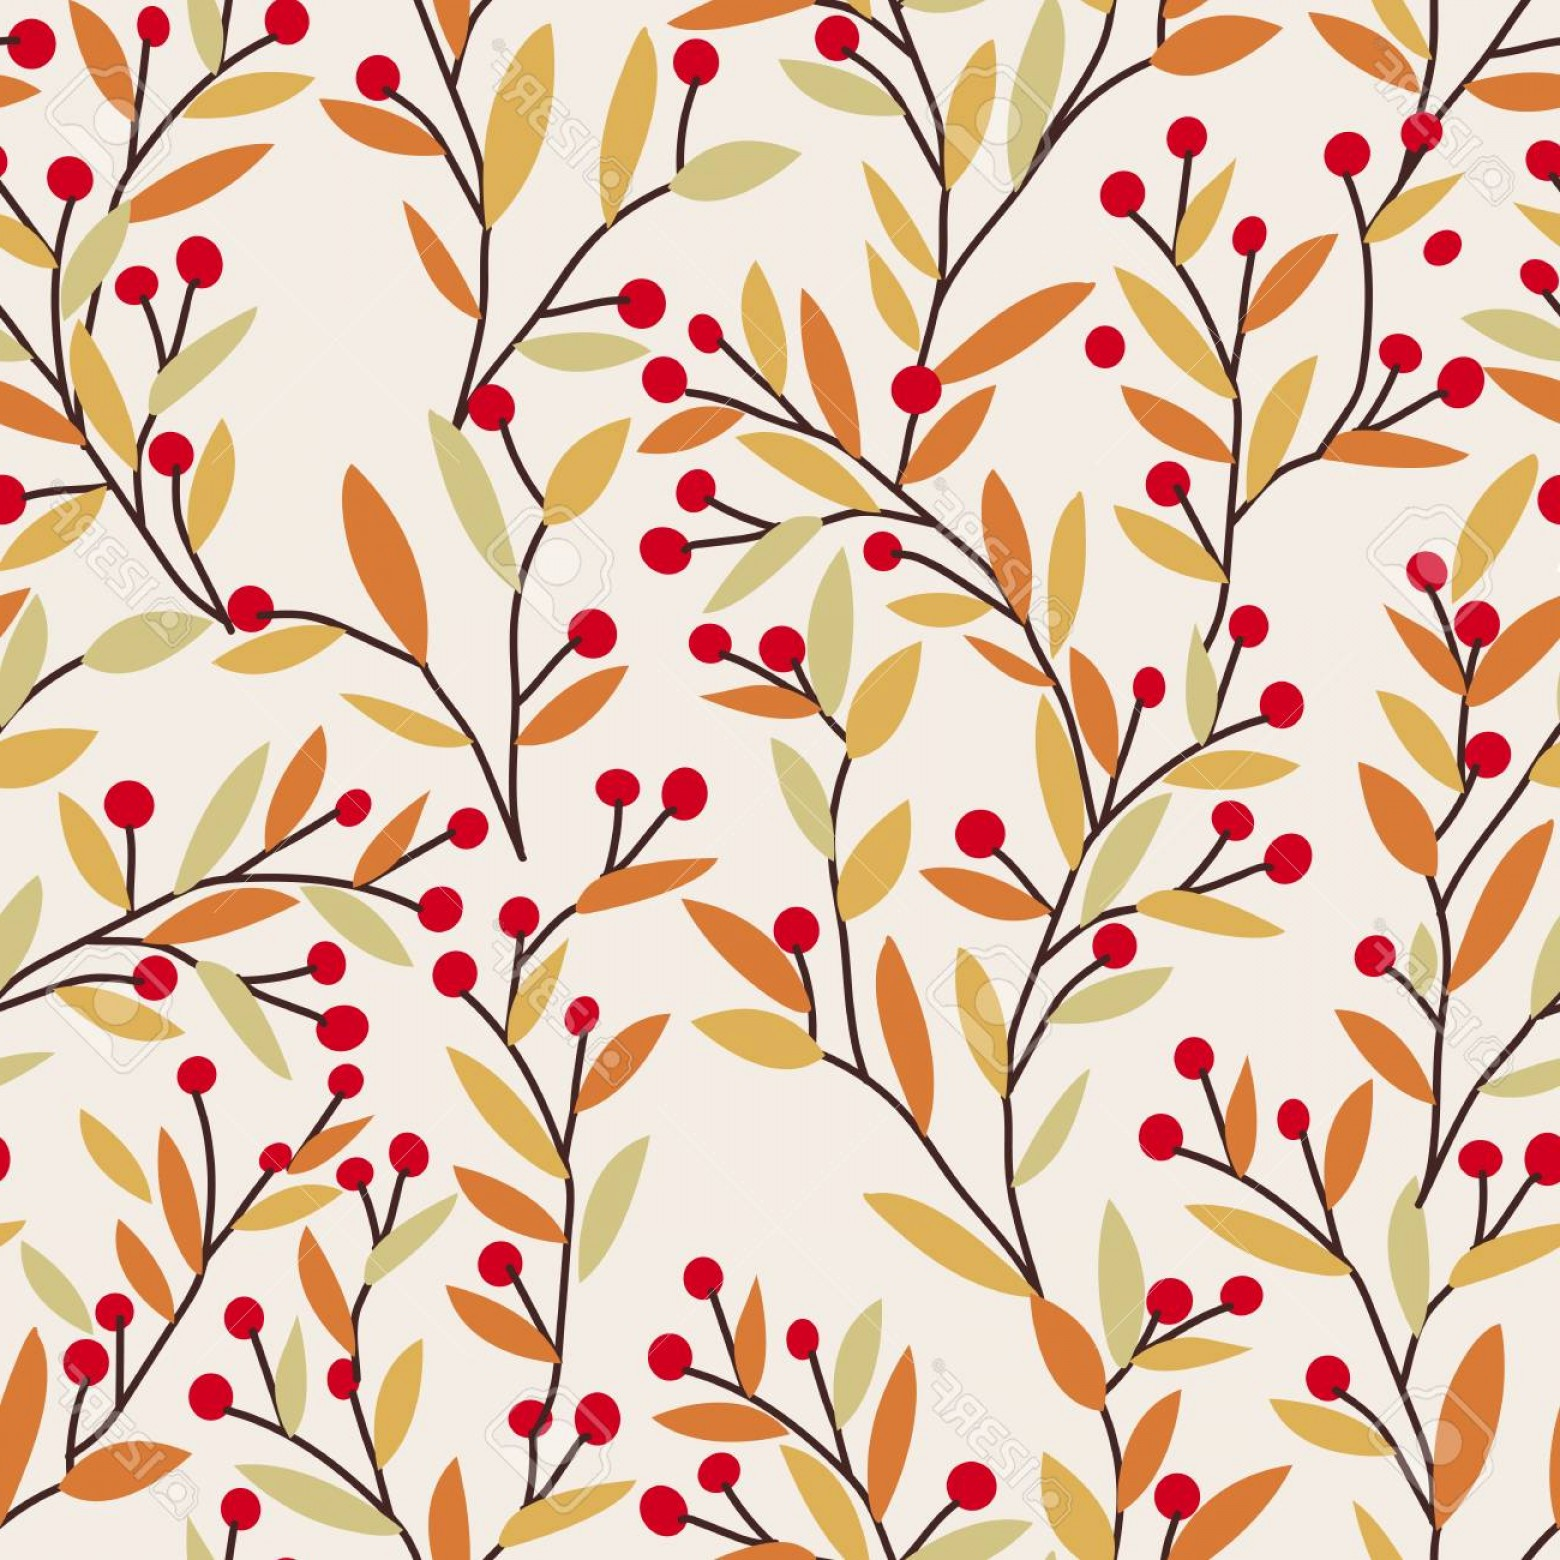 Autumn Seamless Vector: Photoseamless Vector Autumn Pattern With Red And Orange Berries And Leaves Fall Colorful Floral Backgroun